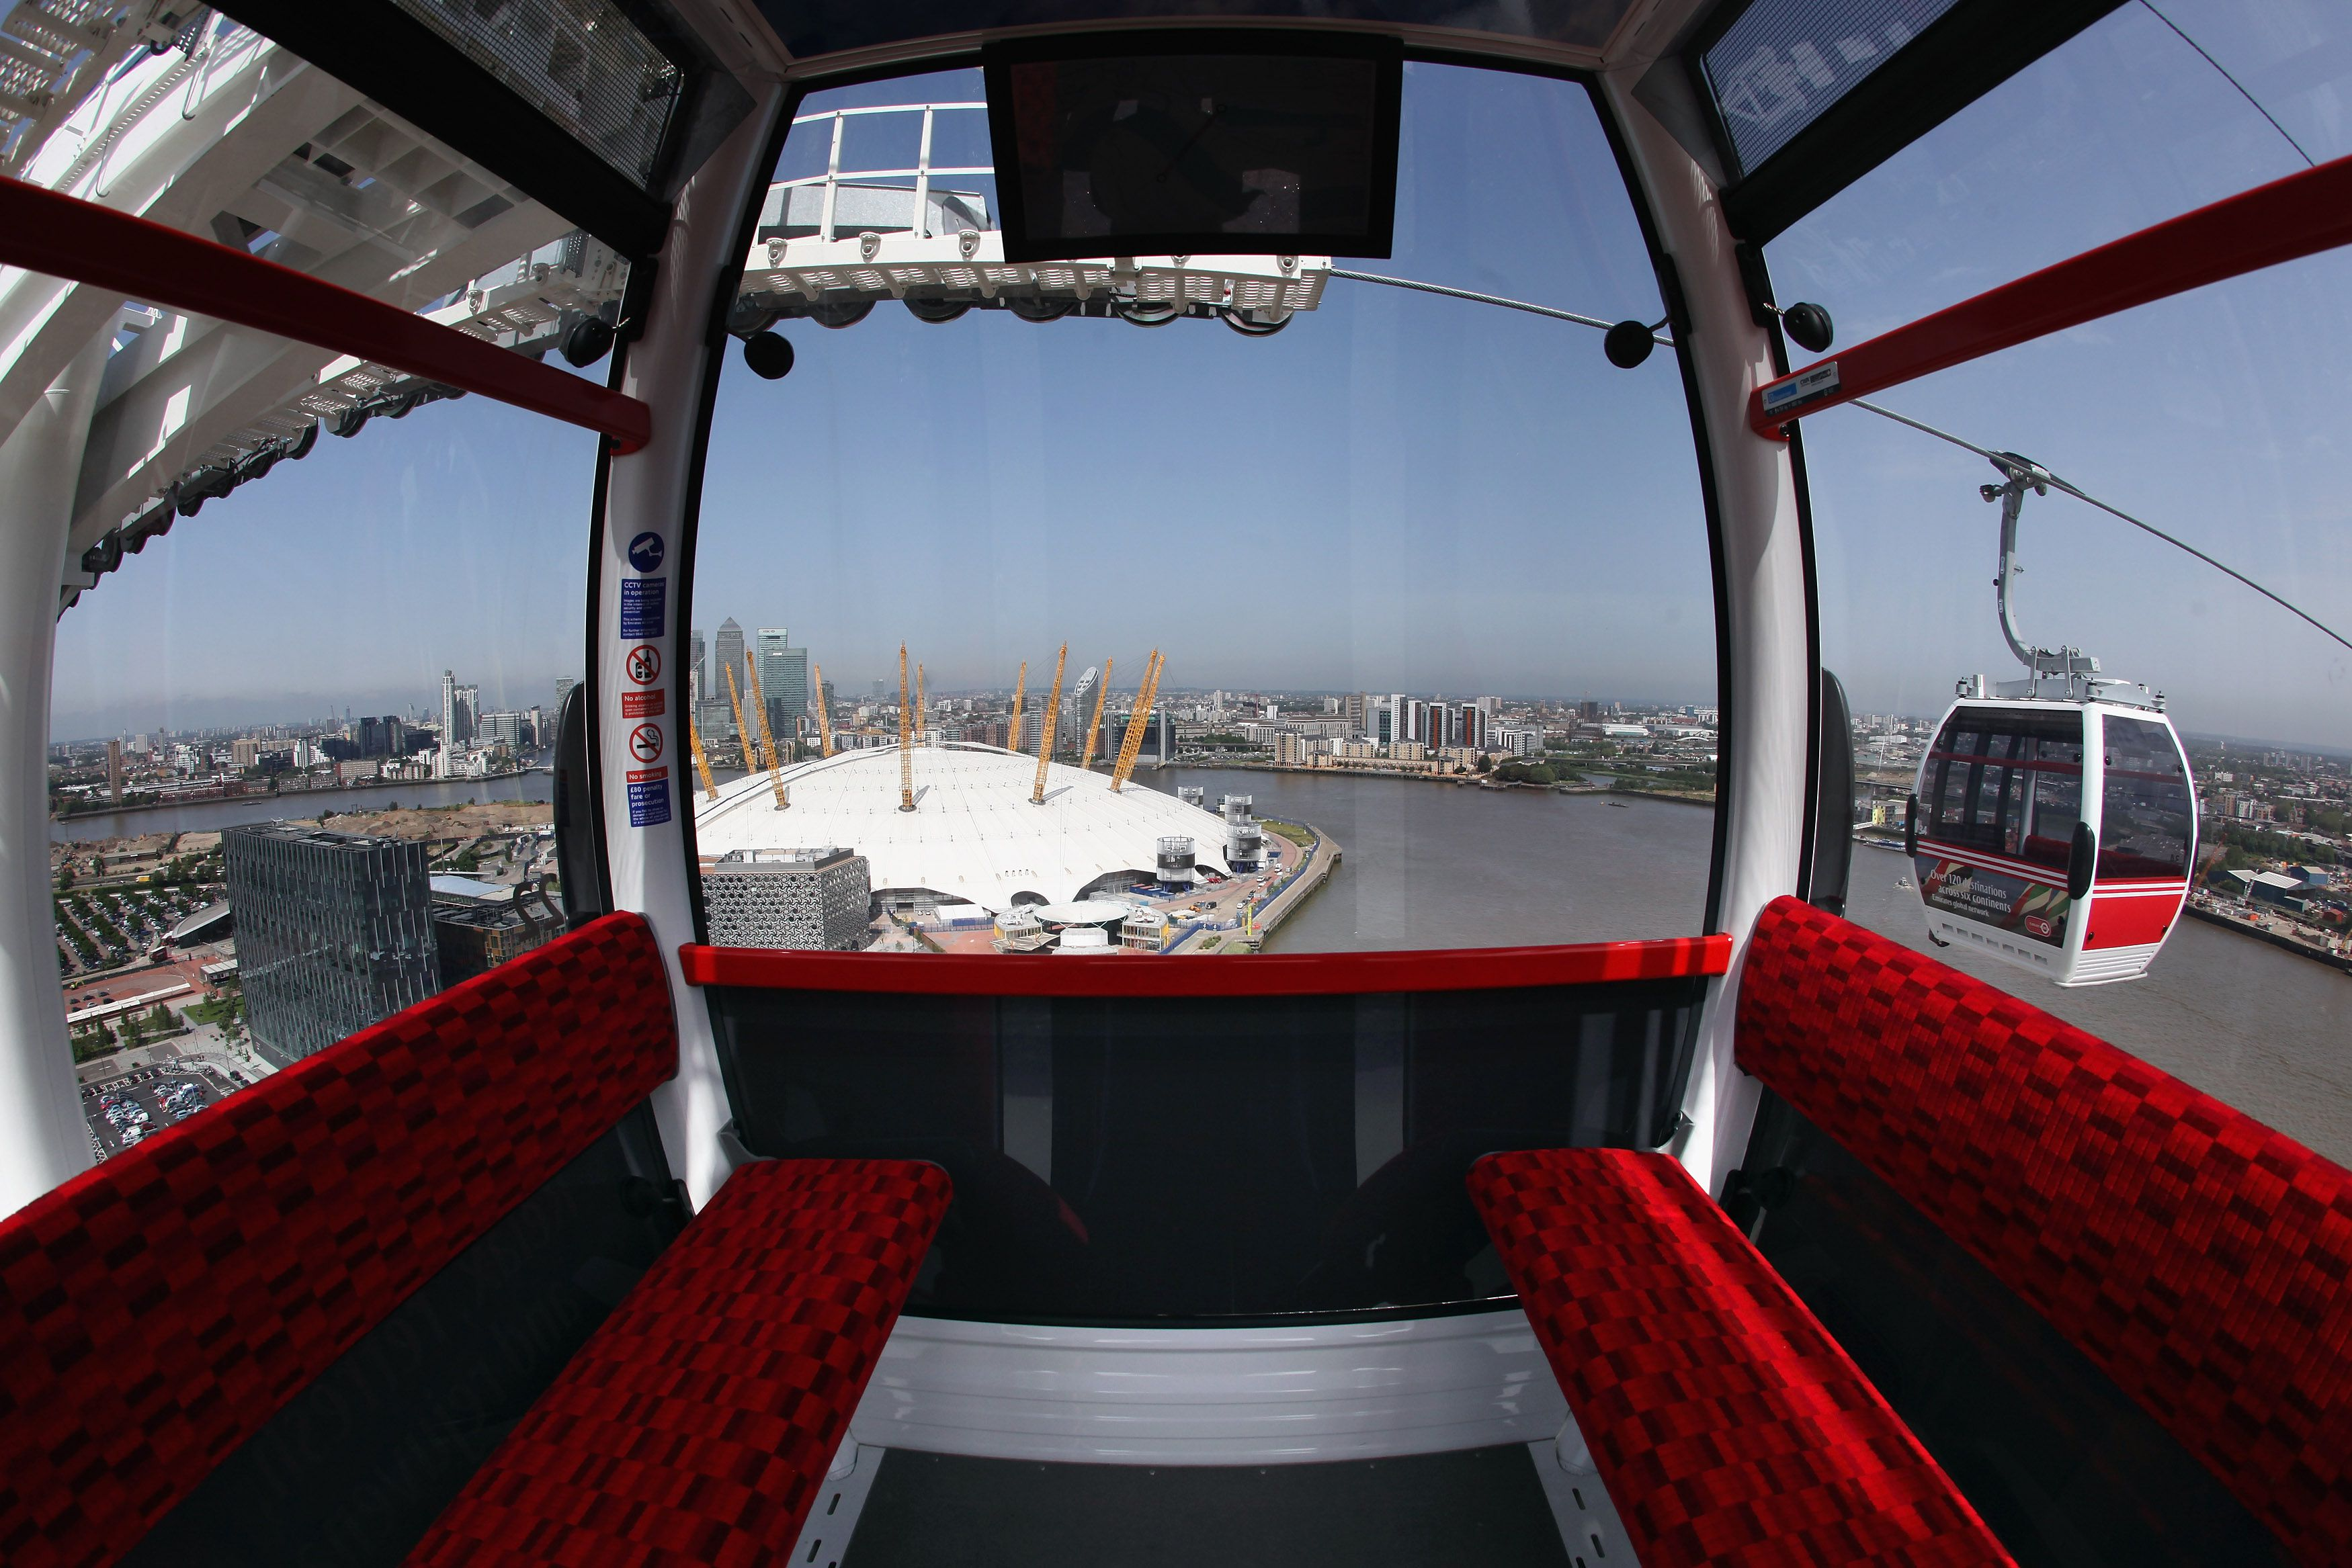 The Emirates Air Line cable car, which operates between the O2 Arena in Greenwich and the ExCeL exhibition centre, at the Royal Docks in London, England.